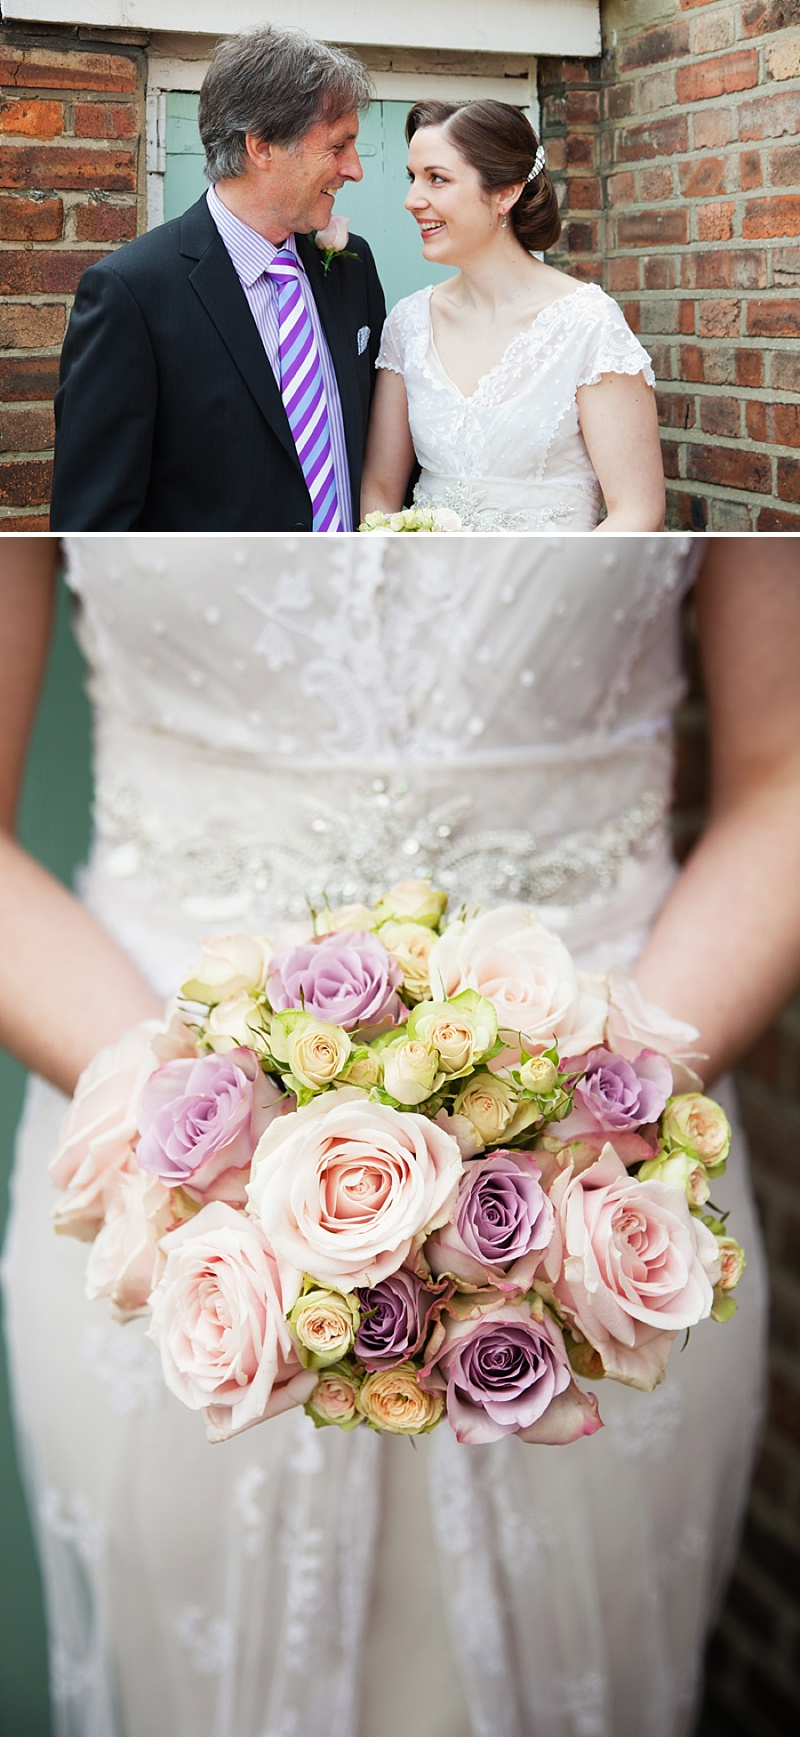 An-Intimate-20s-styled-Wedding-At-Kettner's-Soho,-Bride-in-Jane-Bourvis-Gown_0017